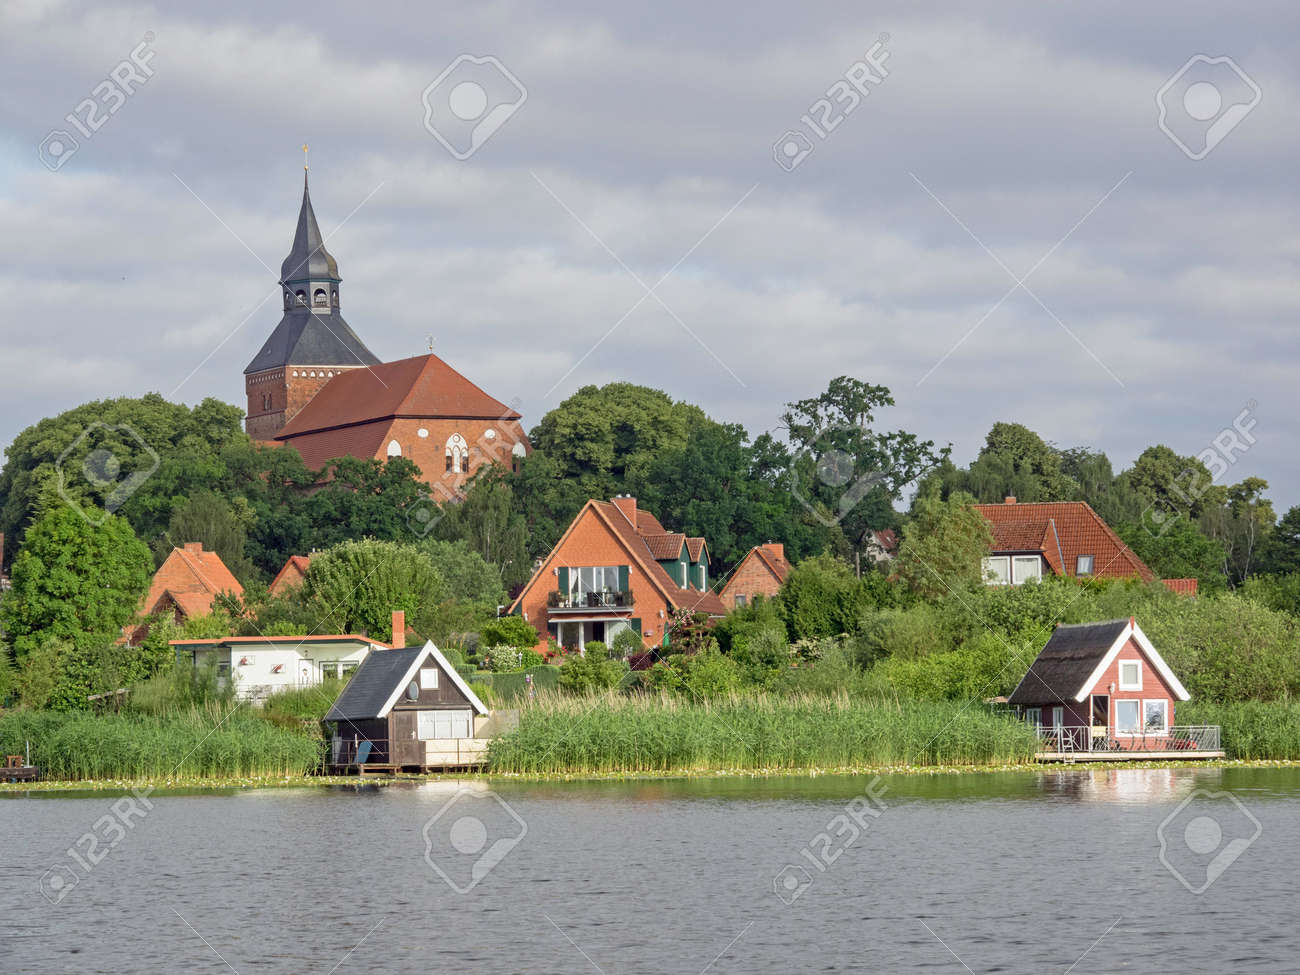 Cityscape of Sternberg with church and lake, Mecklenburg-Western Pomerania, Germany - 162918667